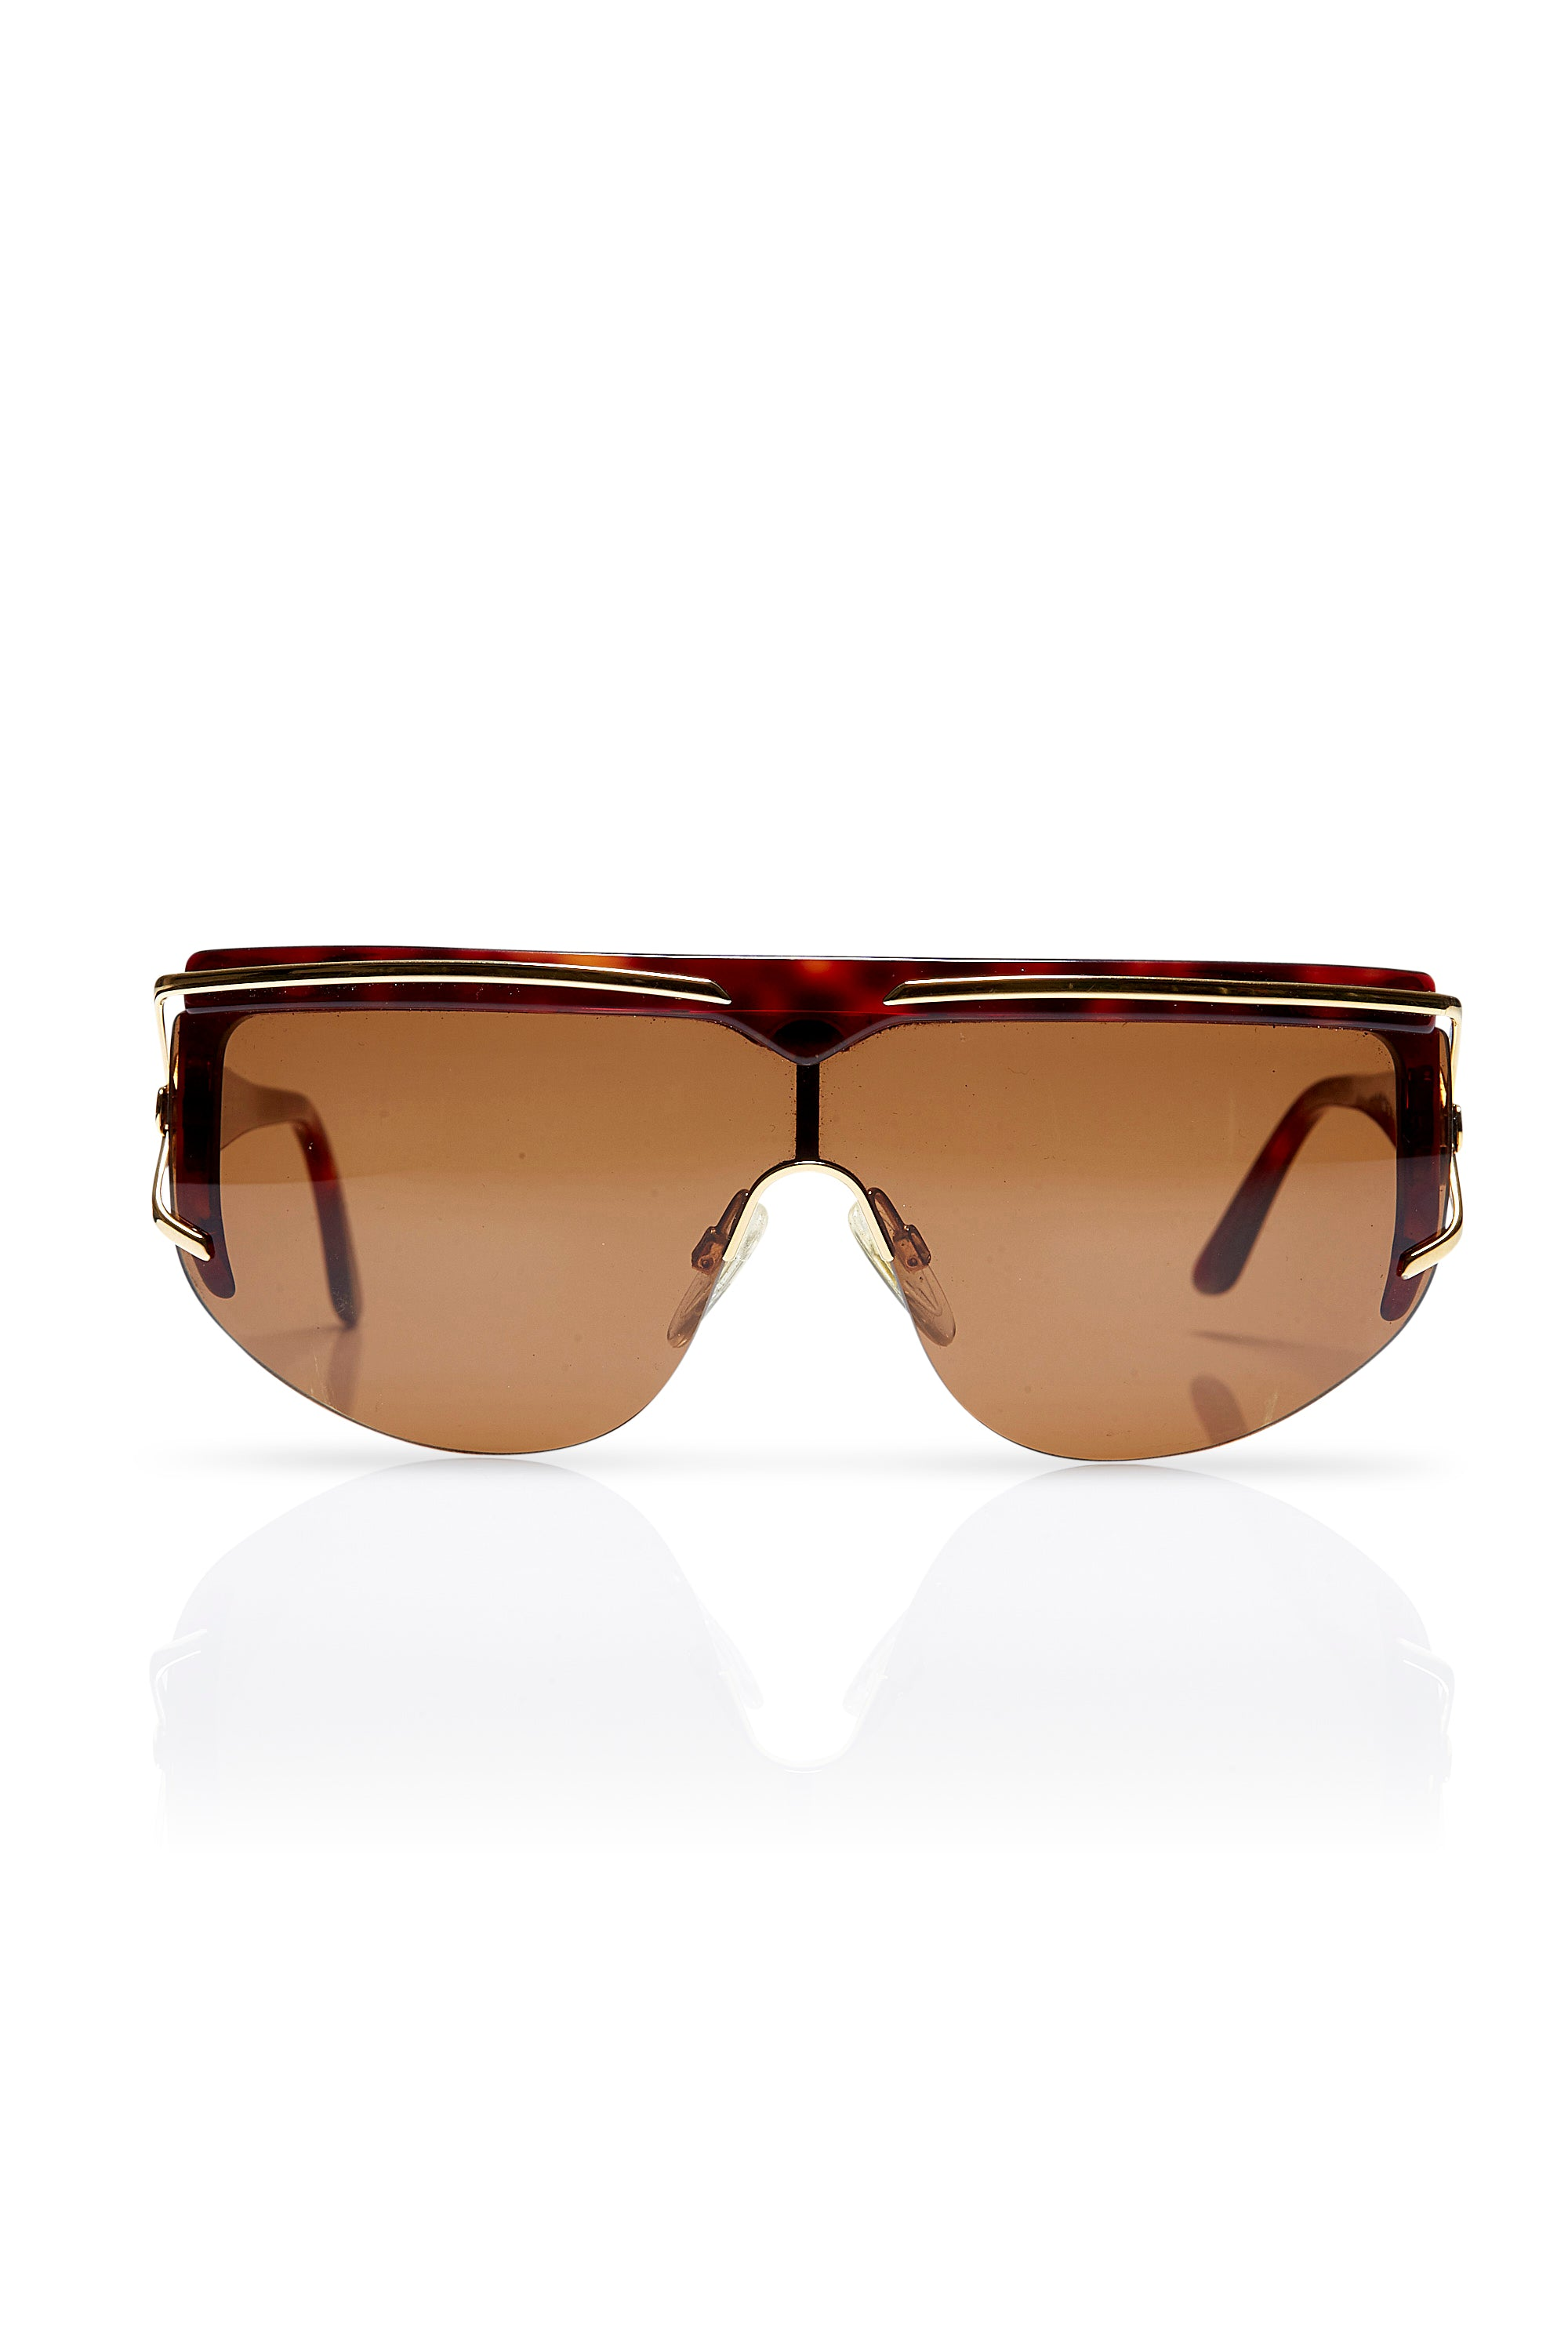 Valentino <br>1980's V568 brown & gold visor sunglasses